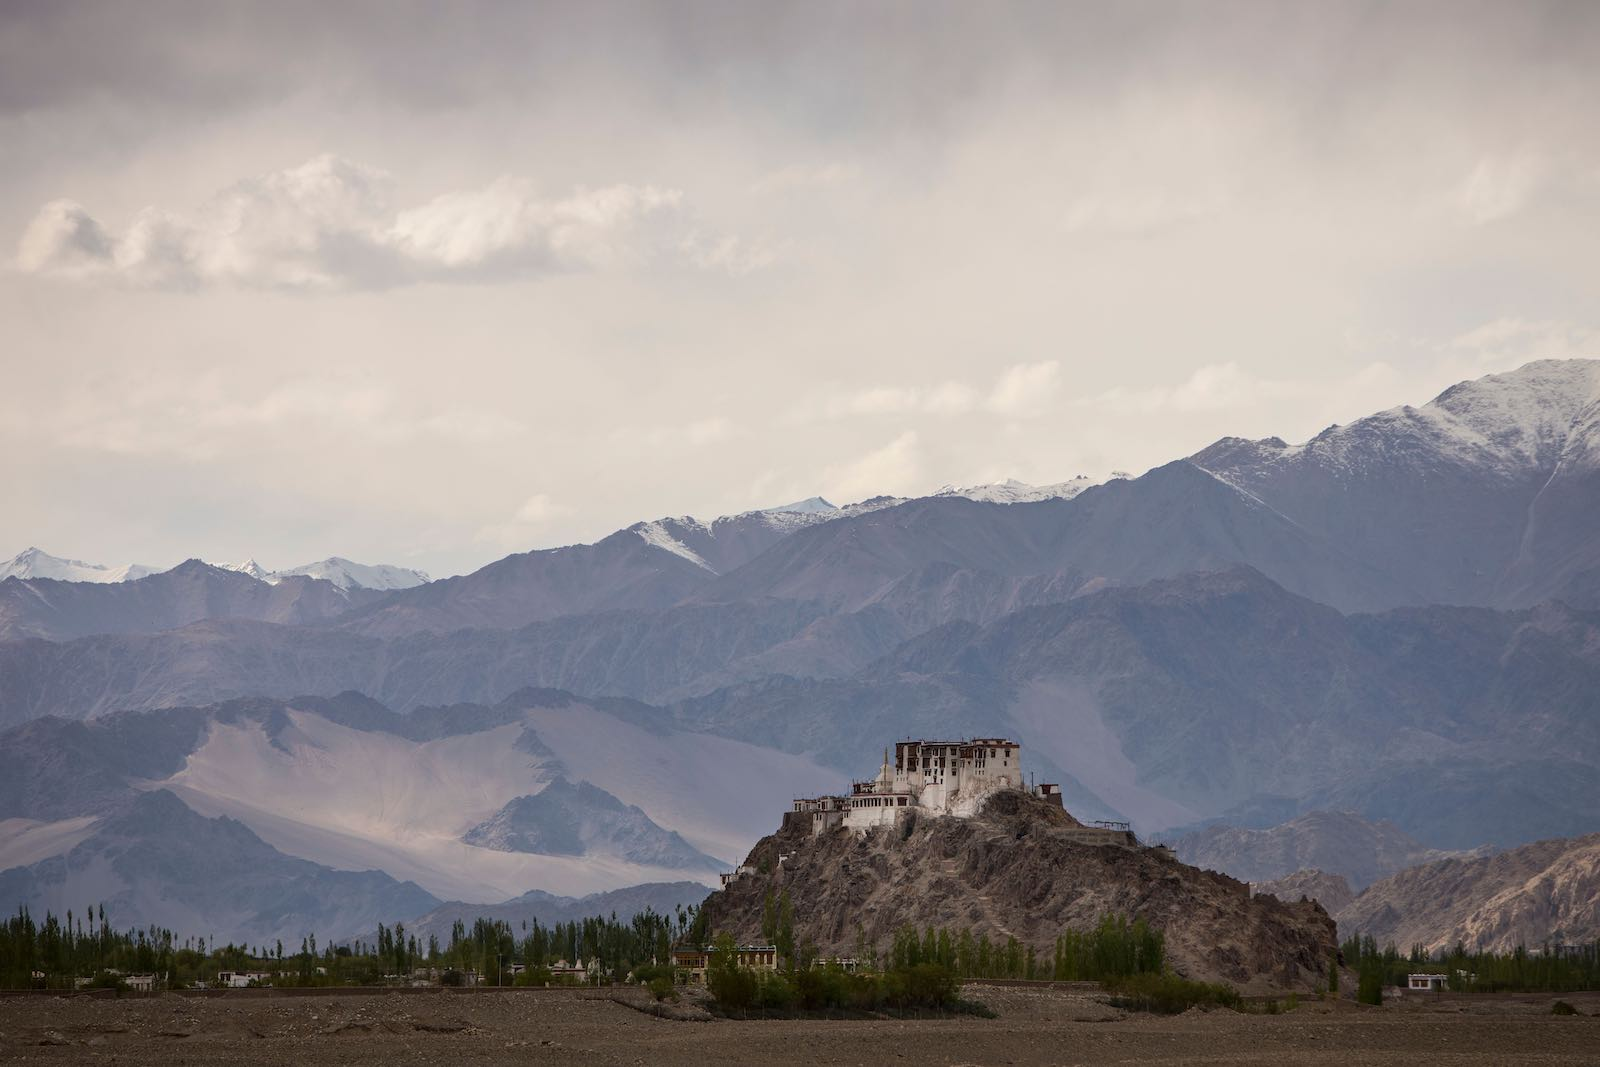 Stakna Monastery near Leh in the northern Indian state of Ladakh (Photo: Xavier Galiana via Getty)